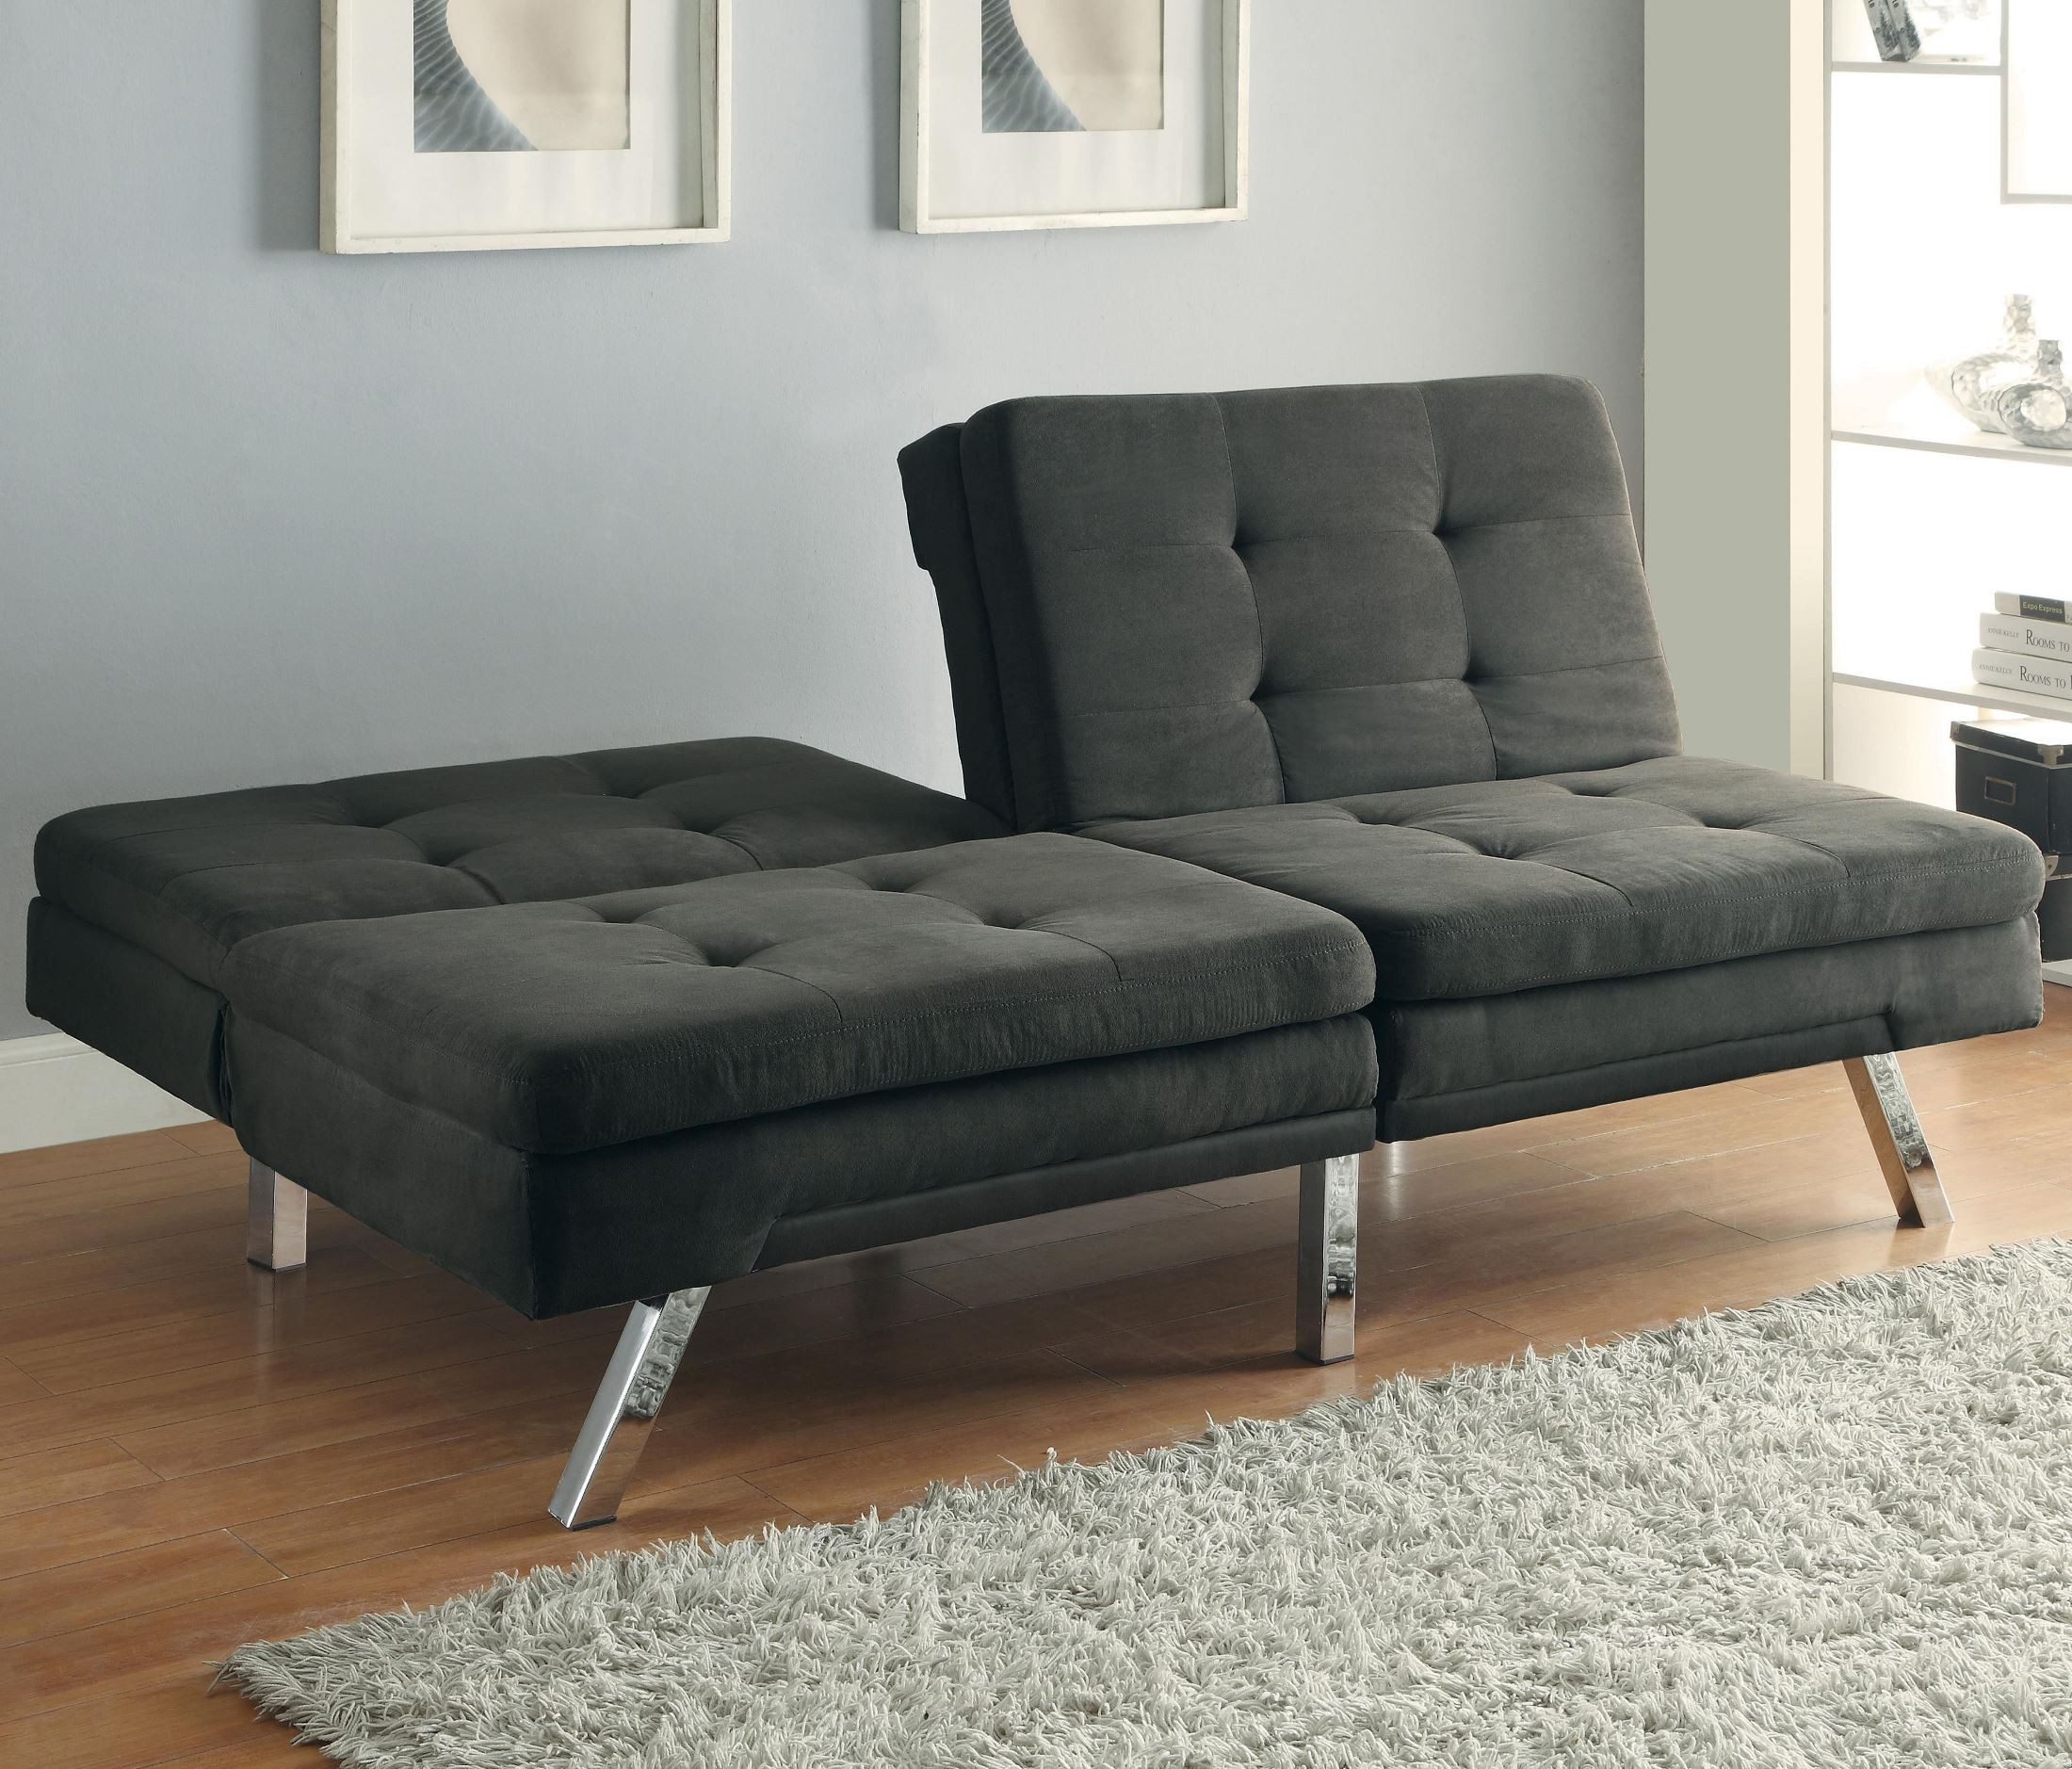 Microfiber Sofa Beds: 300213 Charcoal Microfiber Split Back Tufted Sofa Bed From